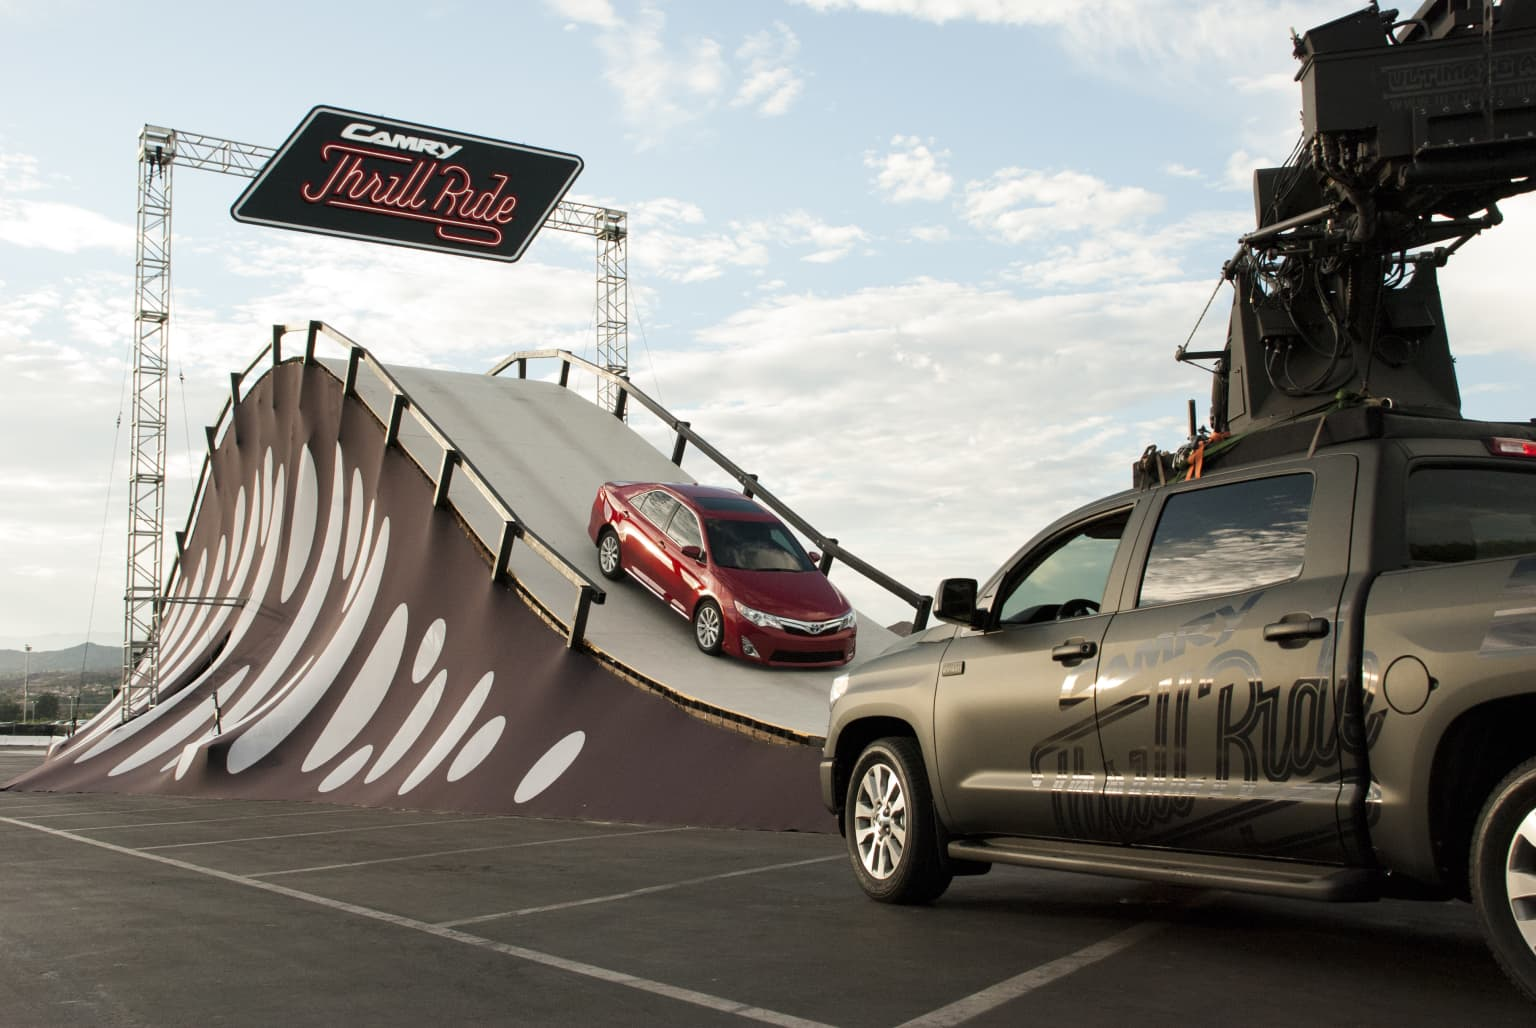 The Camry Thrill Ride